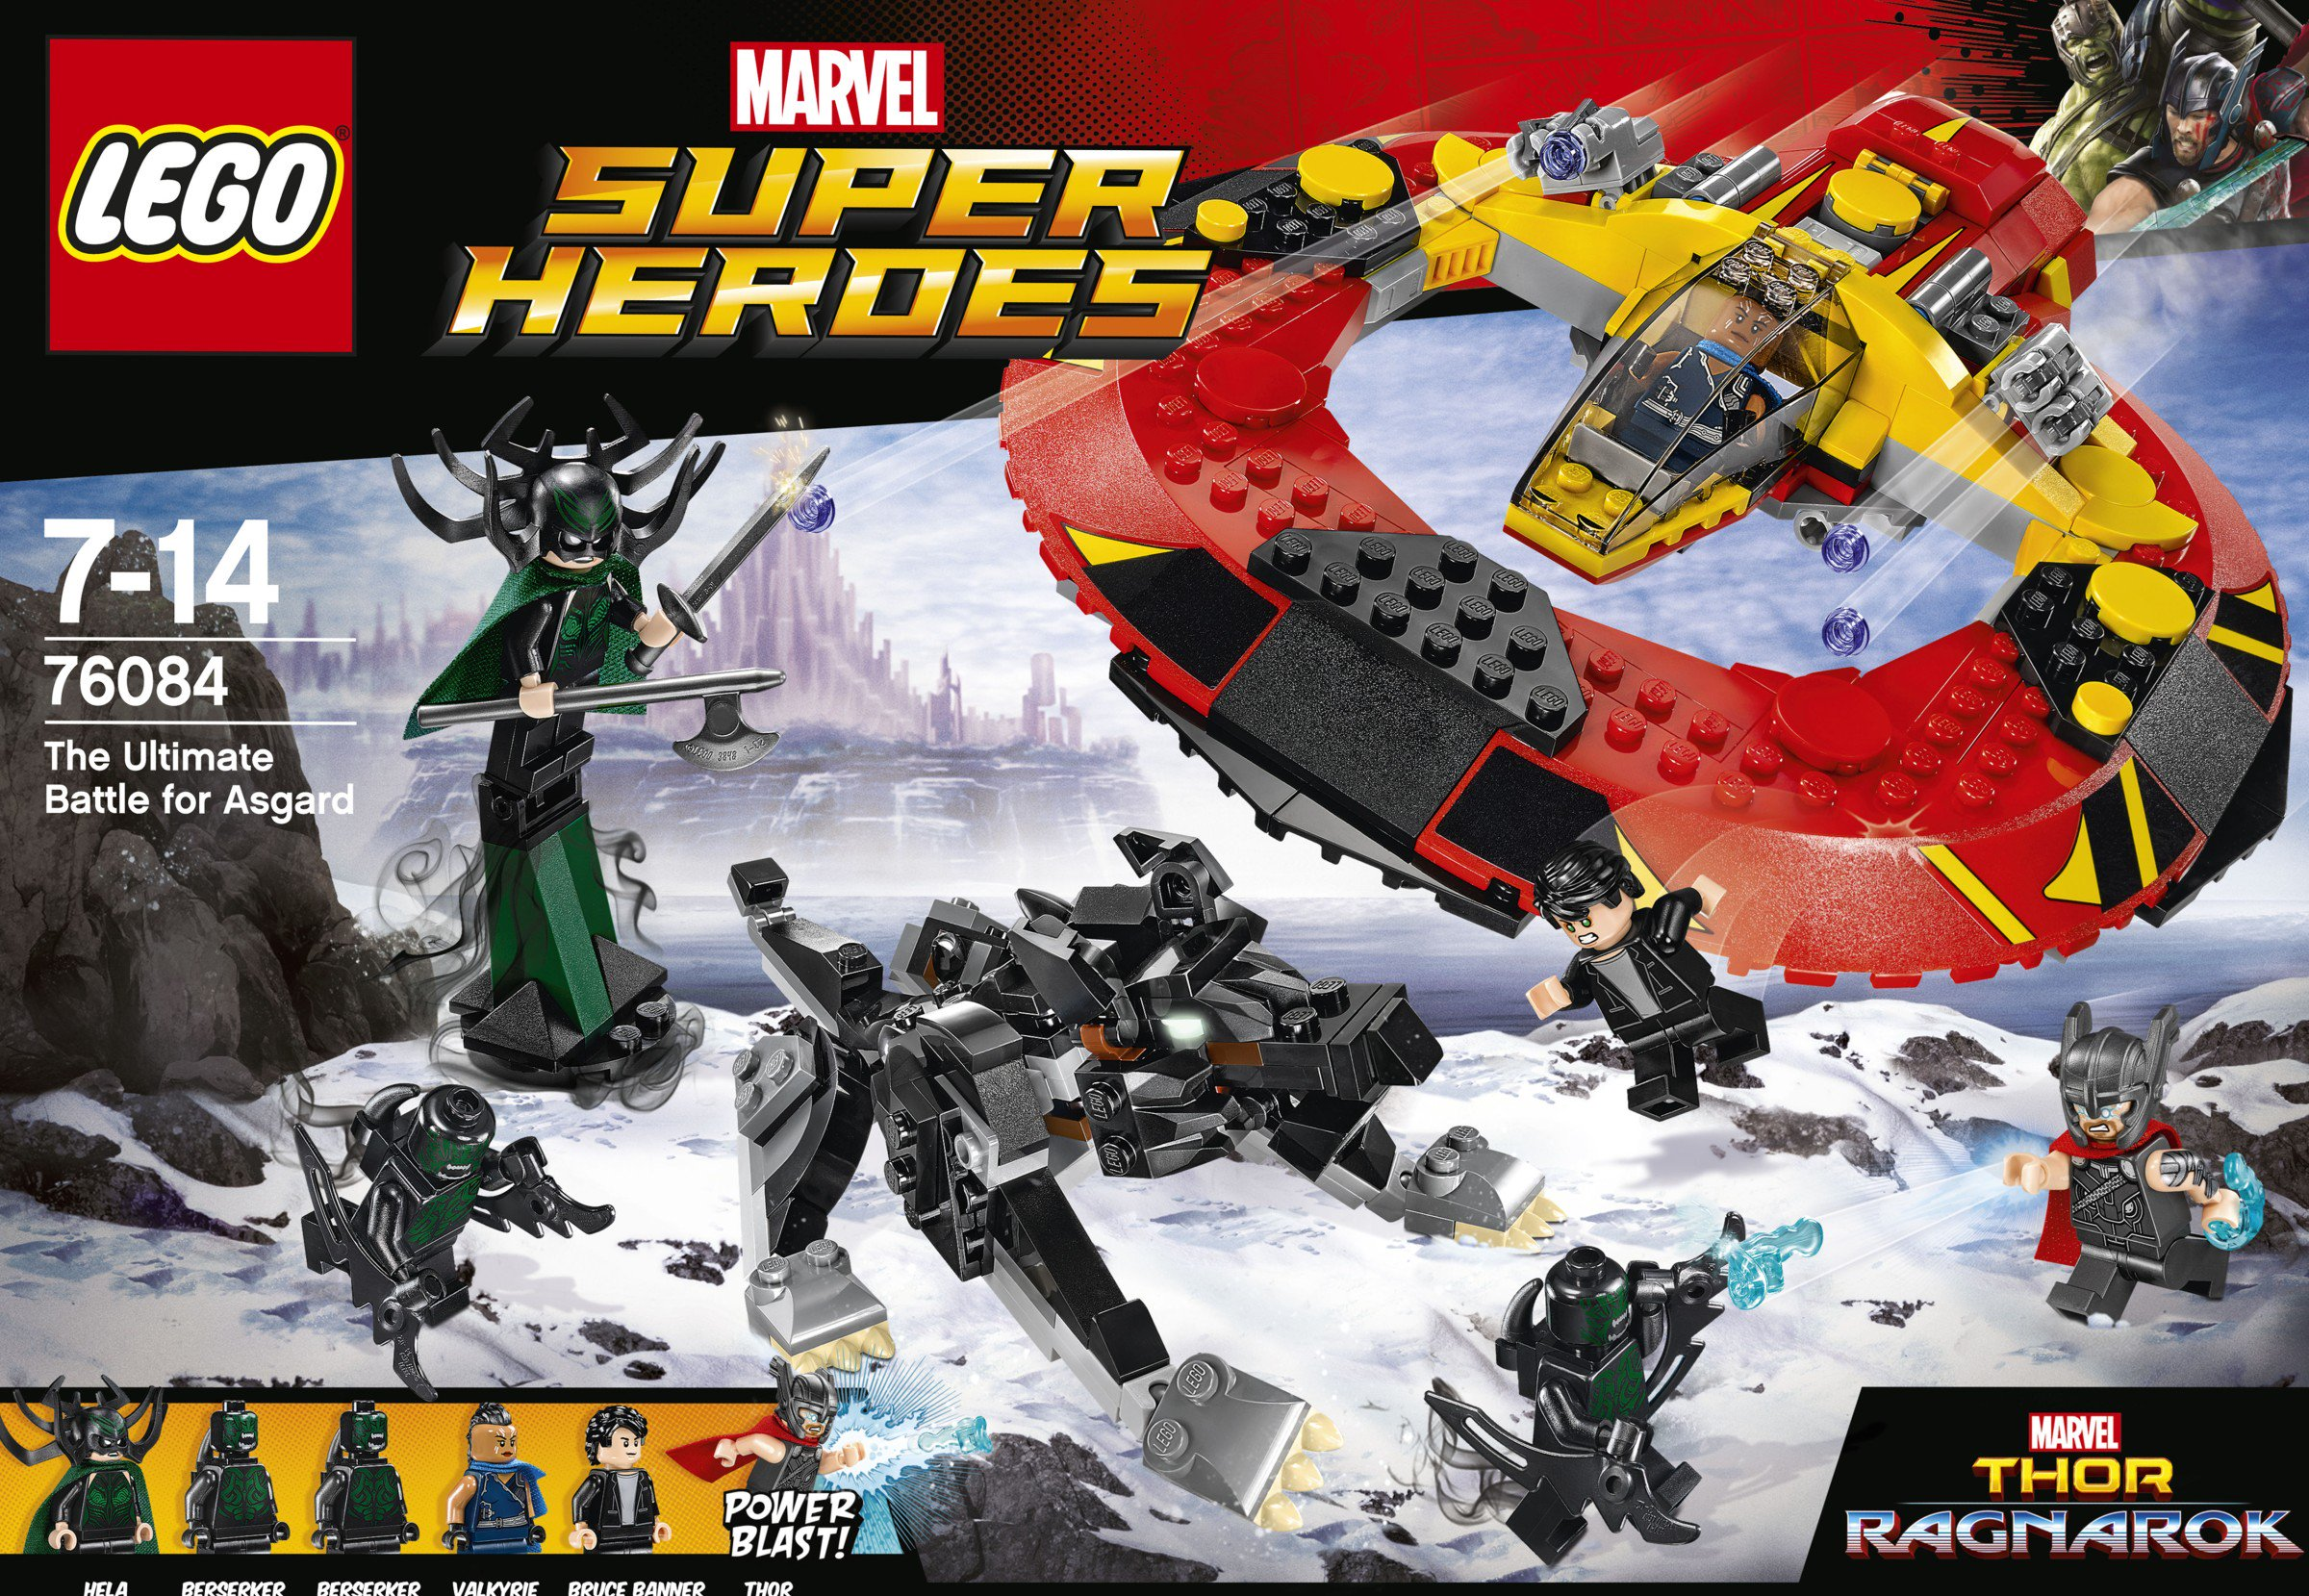 Thor  Ragnarok LEGO Sets Revealed   Cosmic Book News Thor  Raganarok has a November 3  2017 release directed by Taika Waititi  starring Chris Hemsworth as Thor  Mark Ruffalo as Hulk Banner  Tom  Hiddleston as